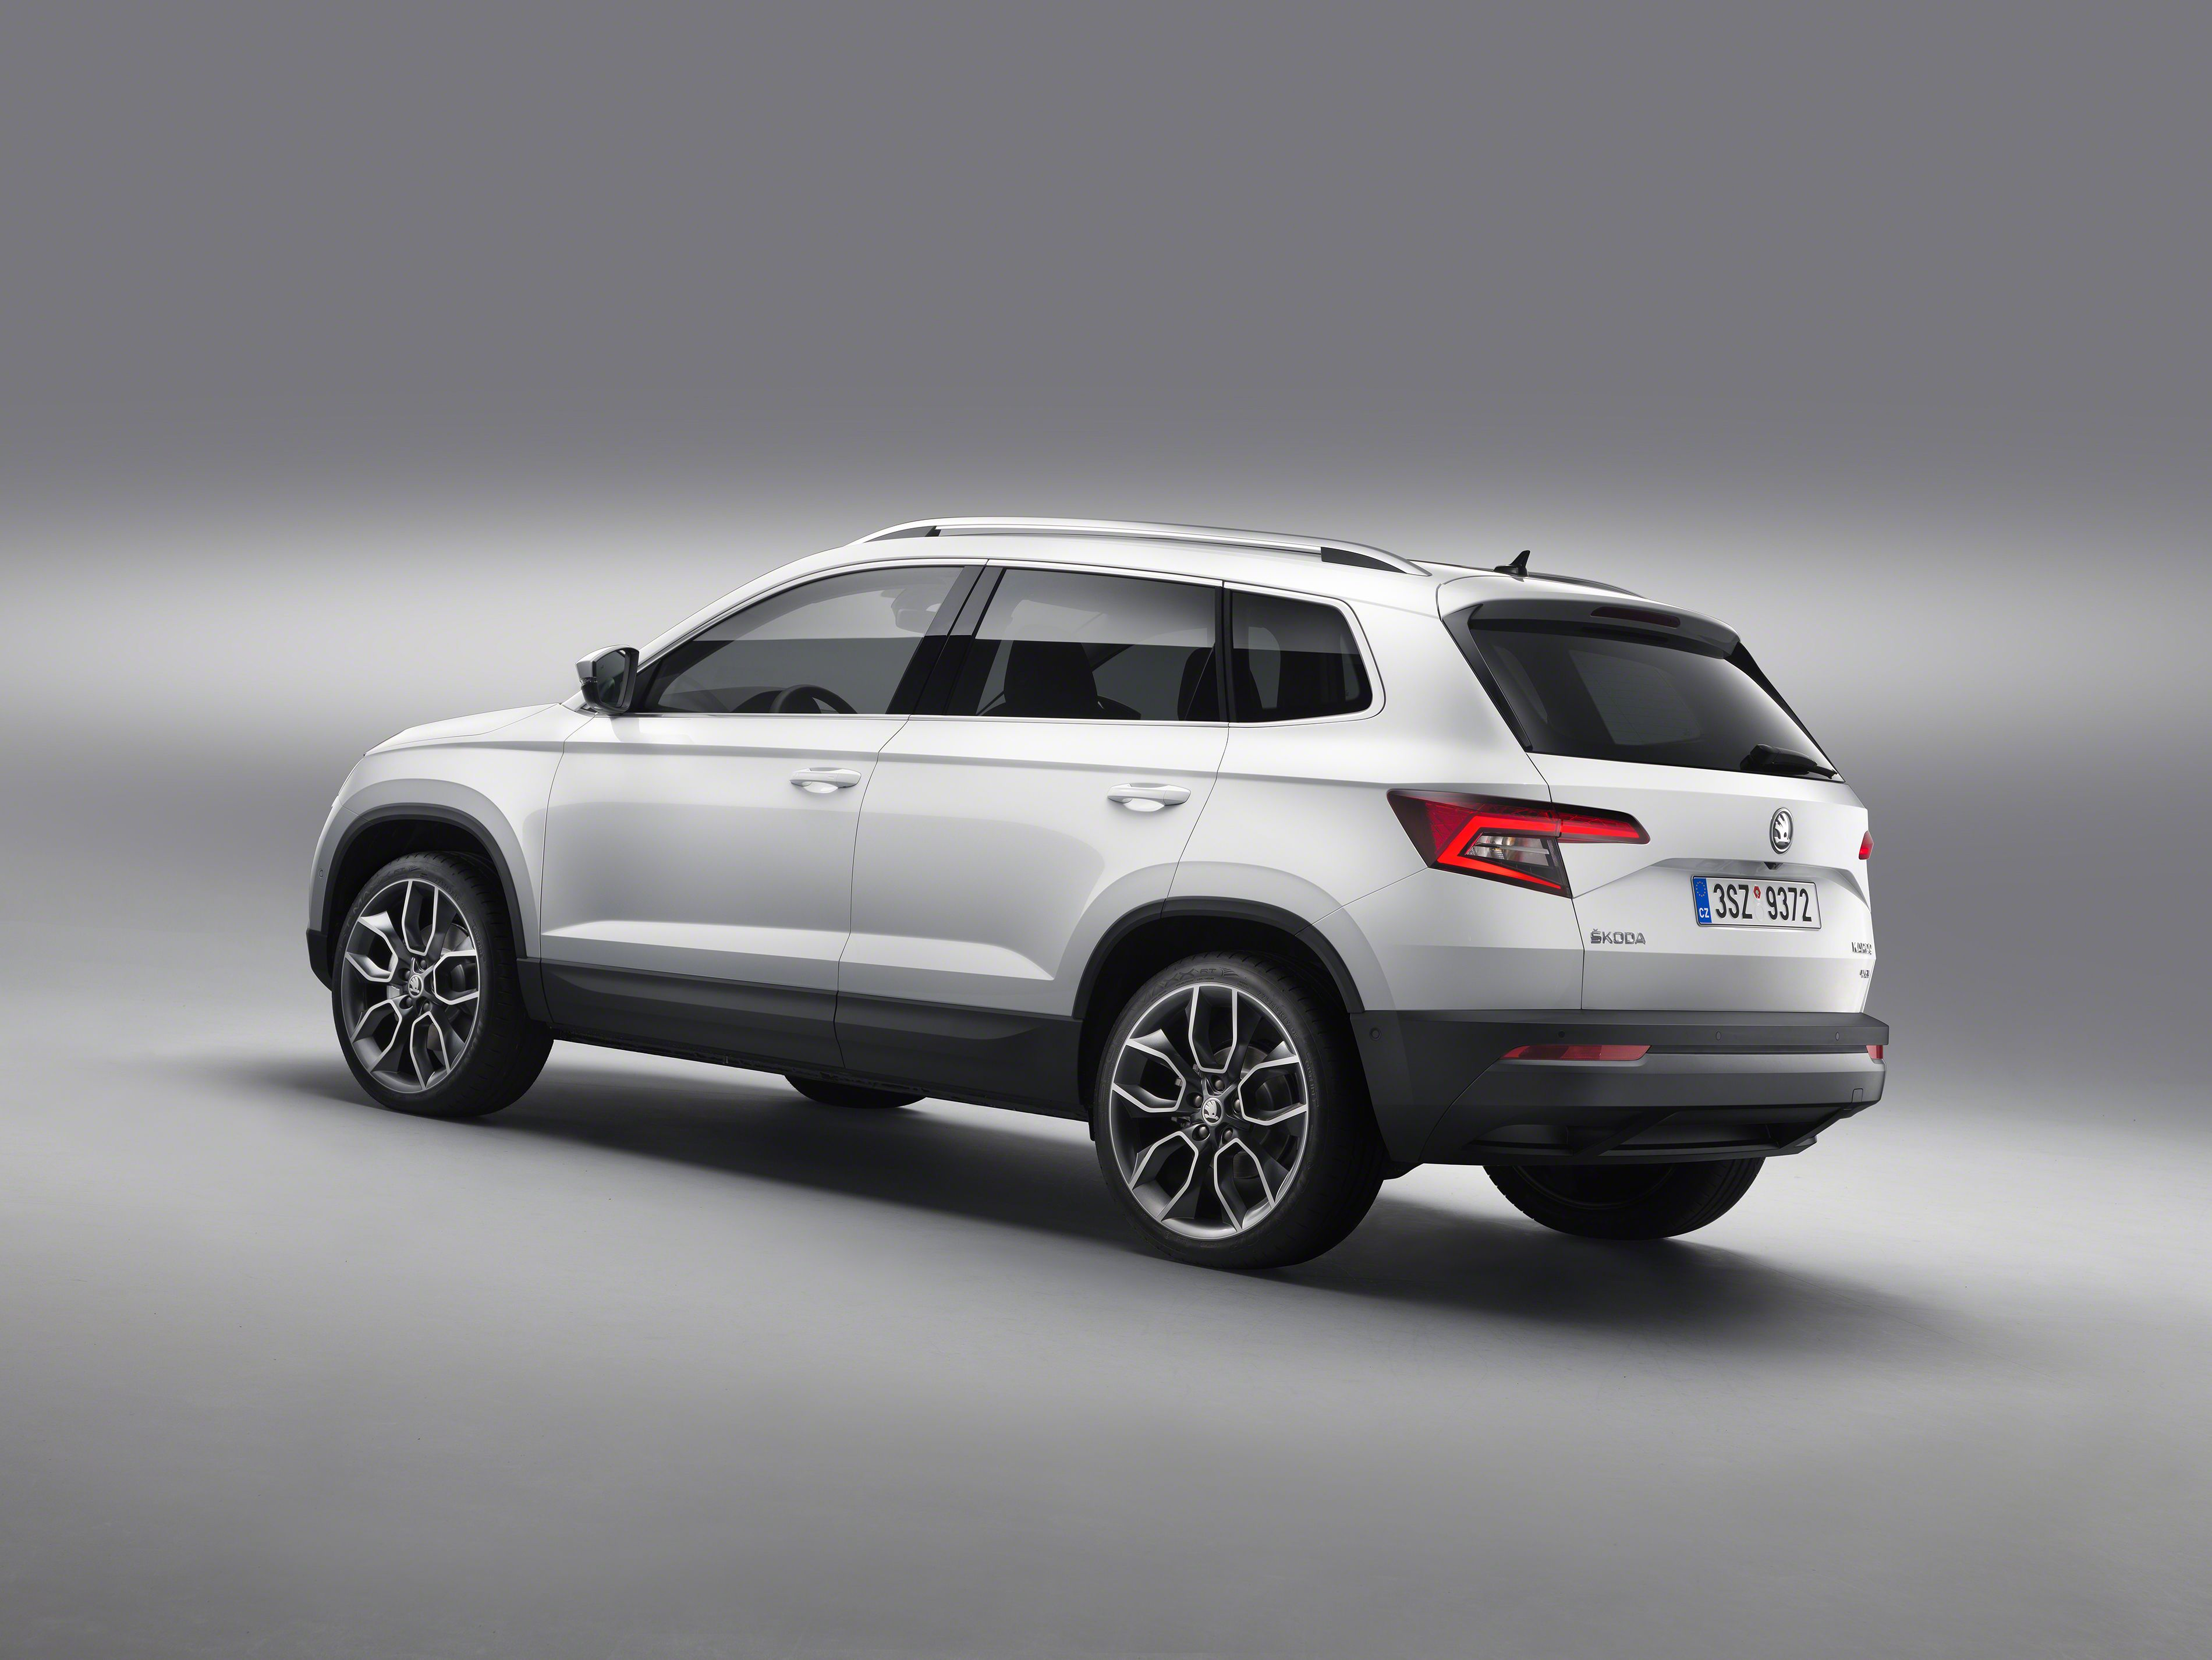 Big suv skoda kodiaq will release in early 2018 the future design known as 2018 skoda kodiaq 7 seater suv has lastly been exposed pinterest 4x4